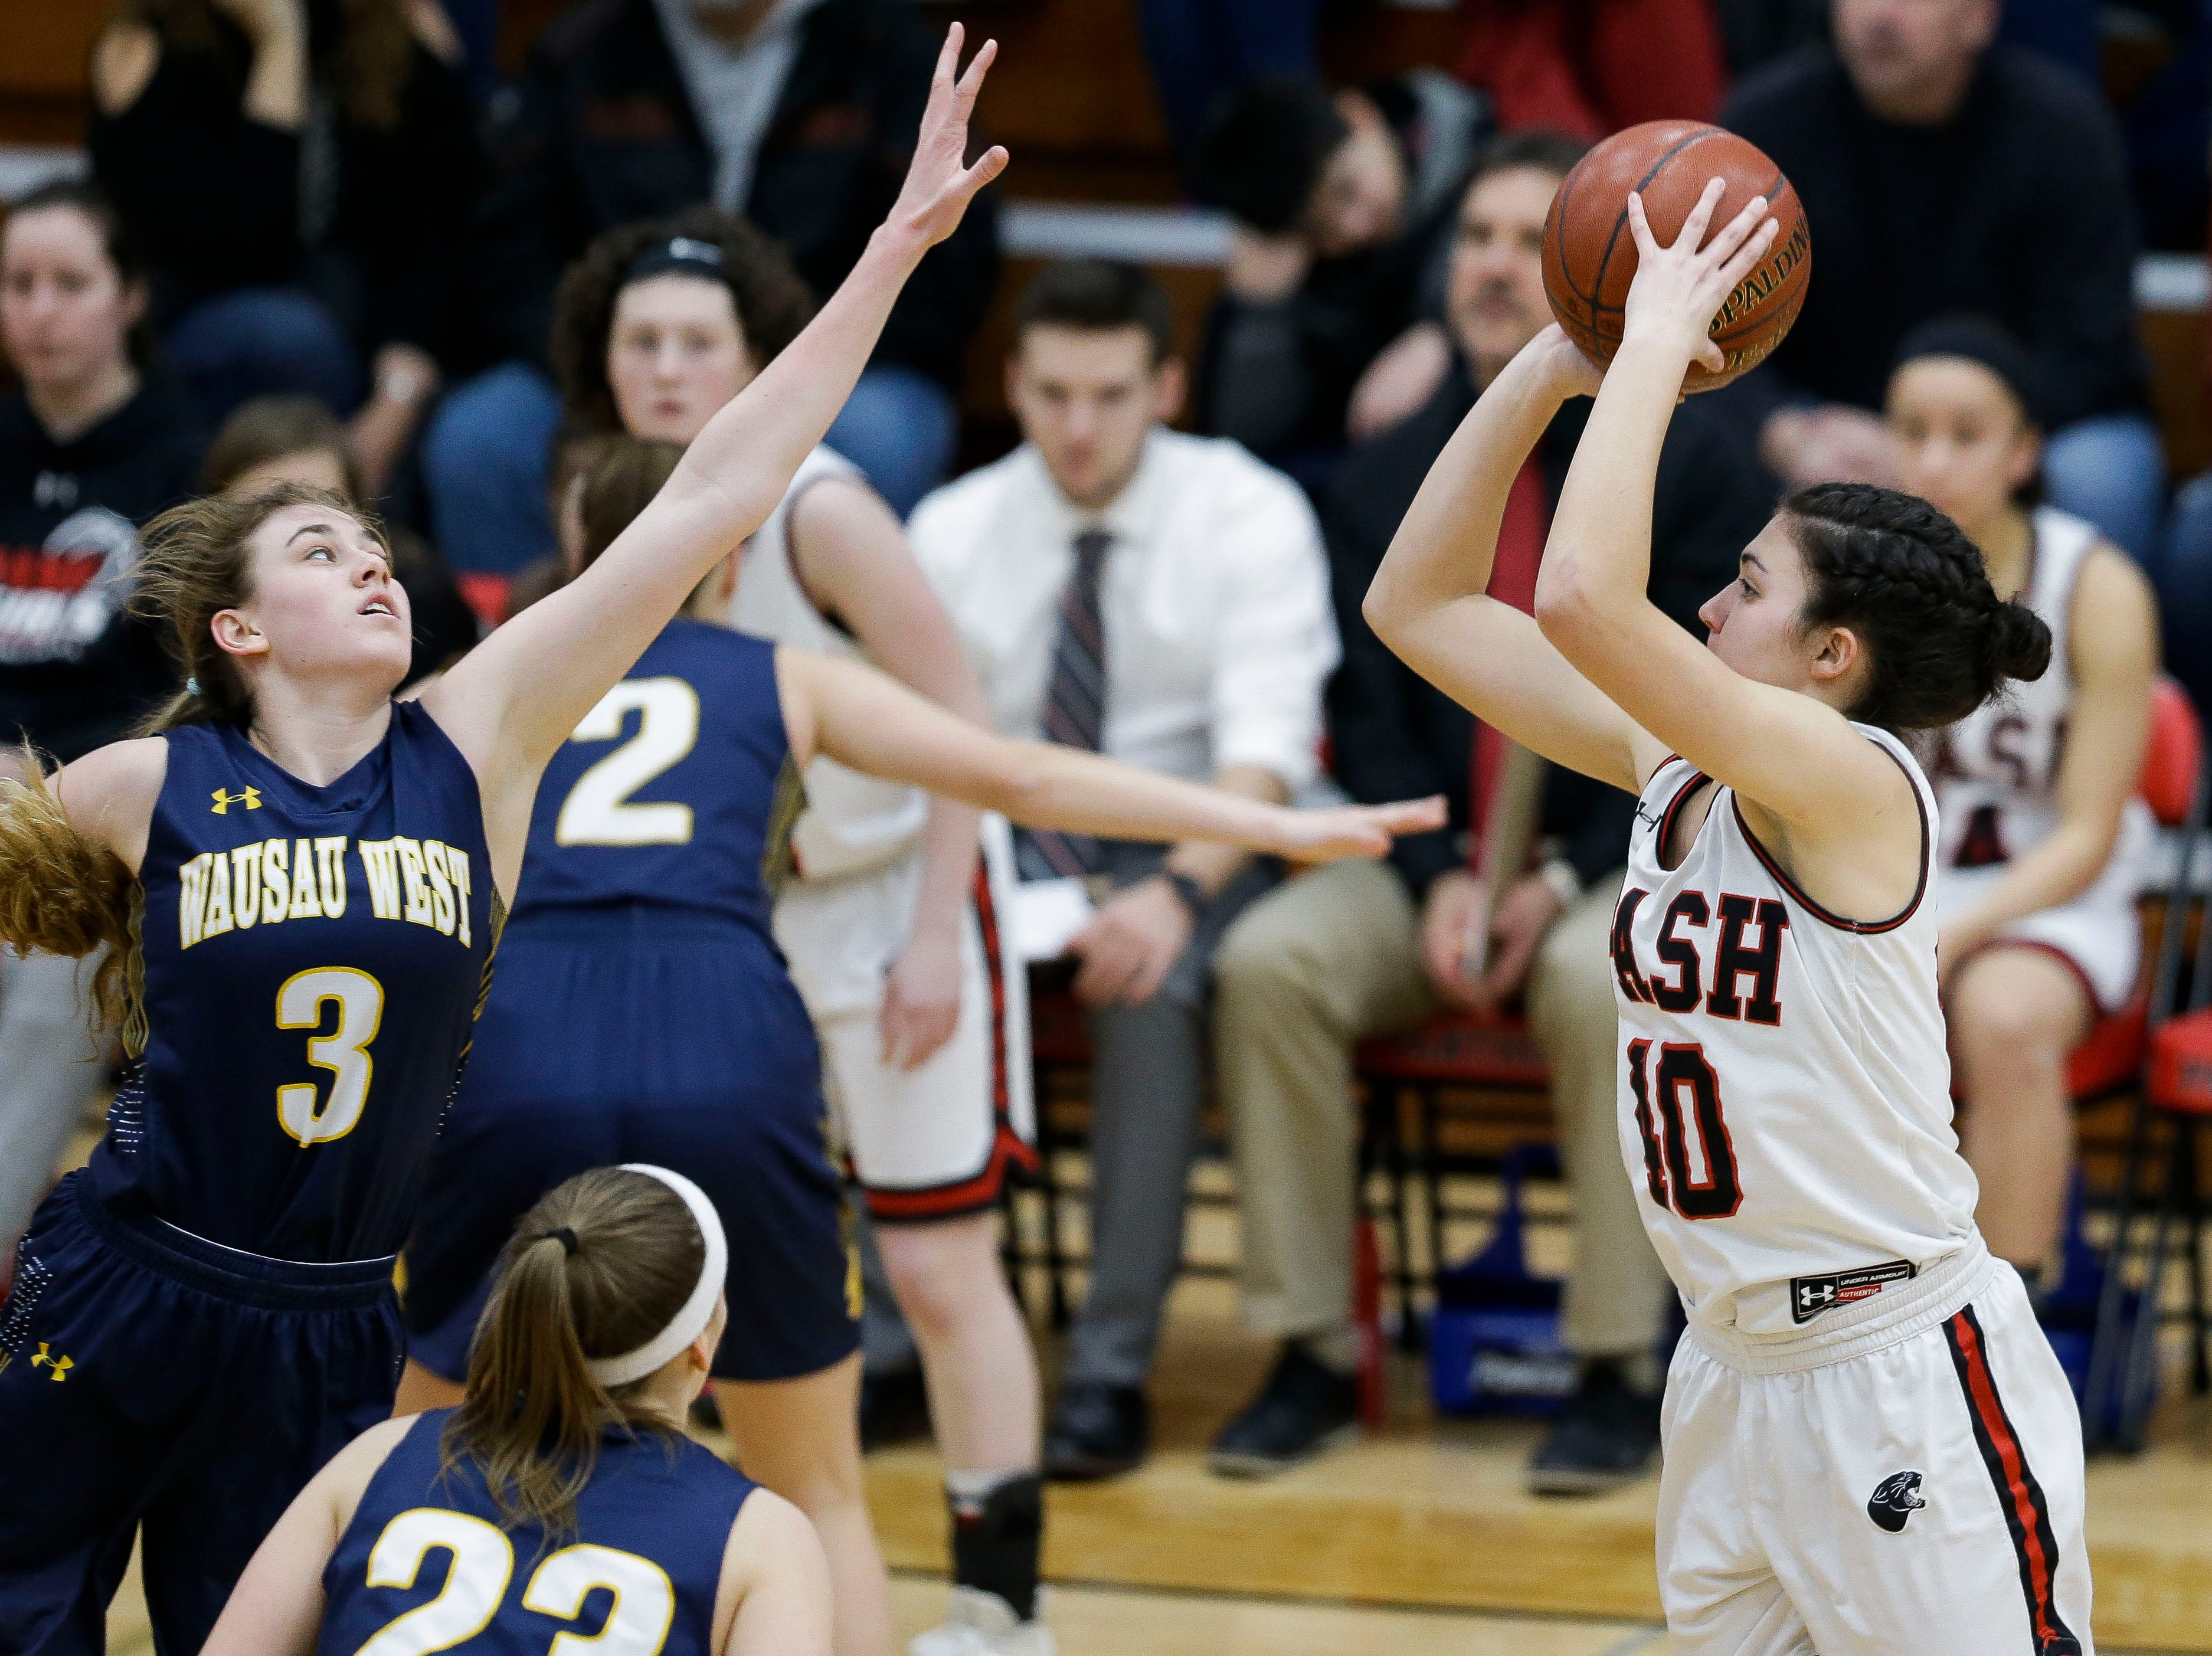 SPASH's Leah Earnest (40) shoots a 3-pointer against Wausau West on Thursday, February 14, 2019, at SPASH in Stevens Point, Wis.Tork Mason/USA TODAY NETWORK-Wisconsin